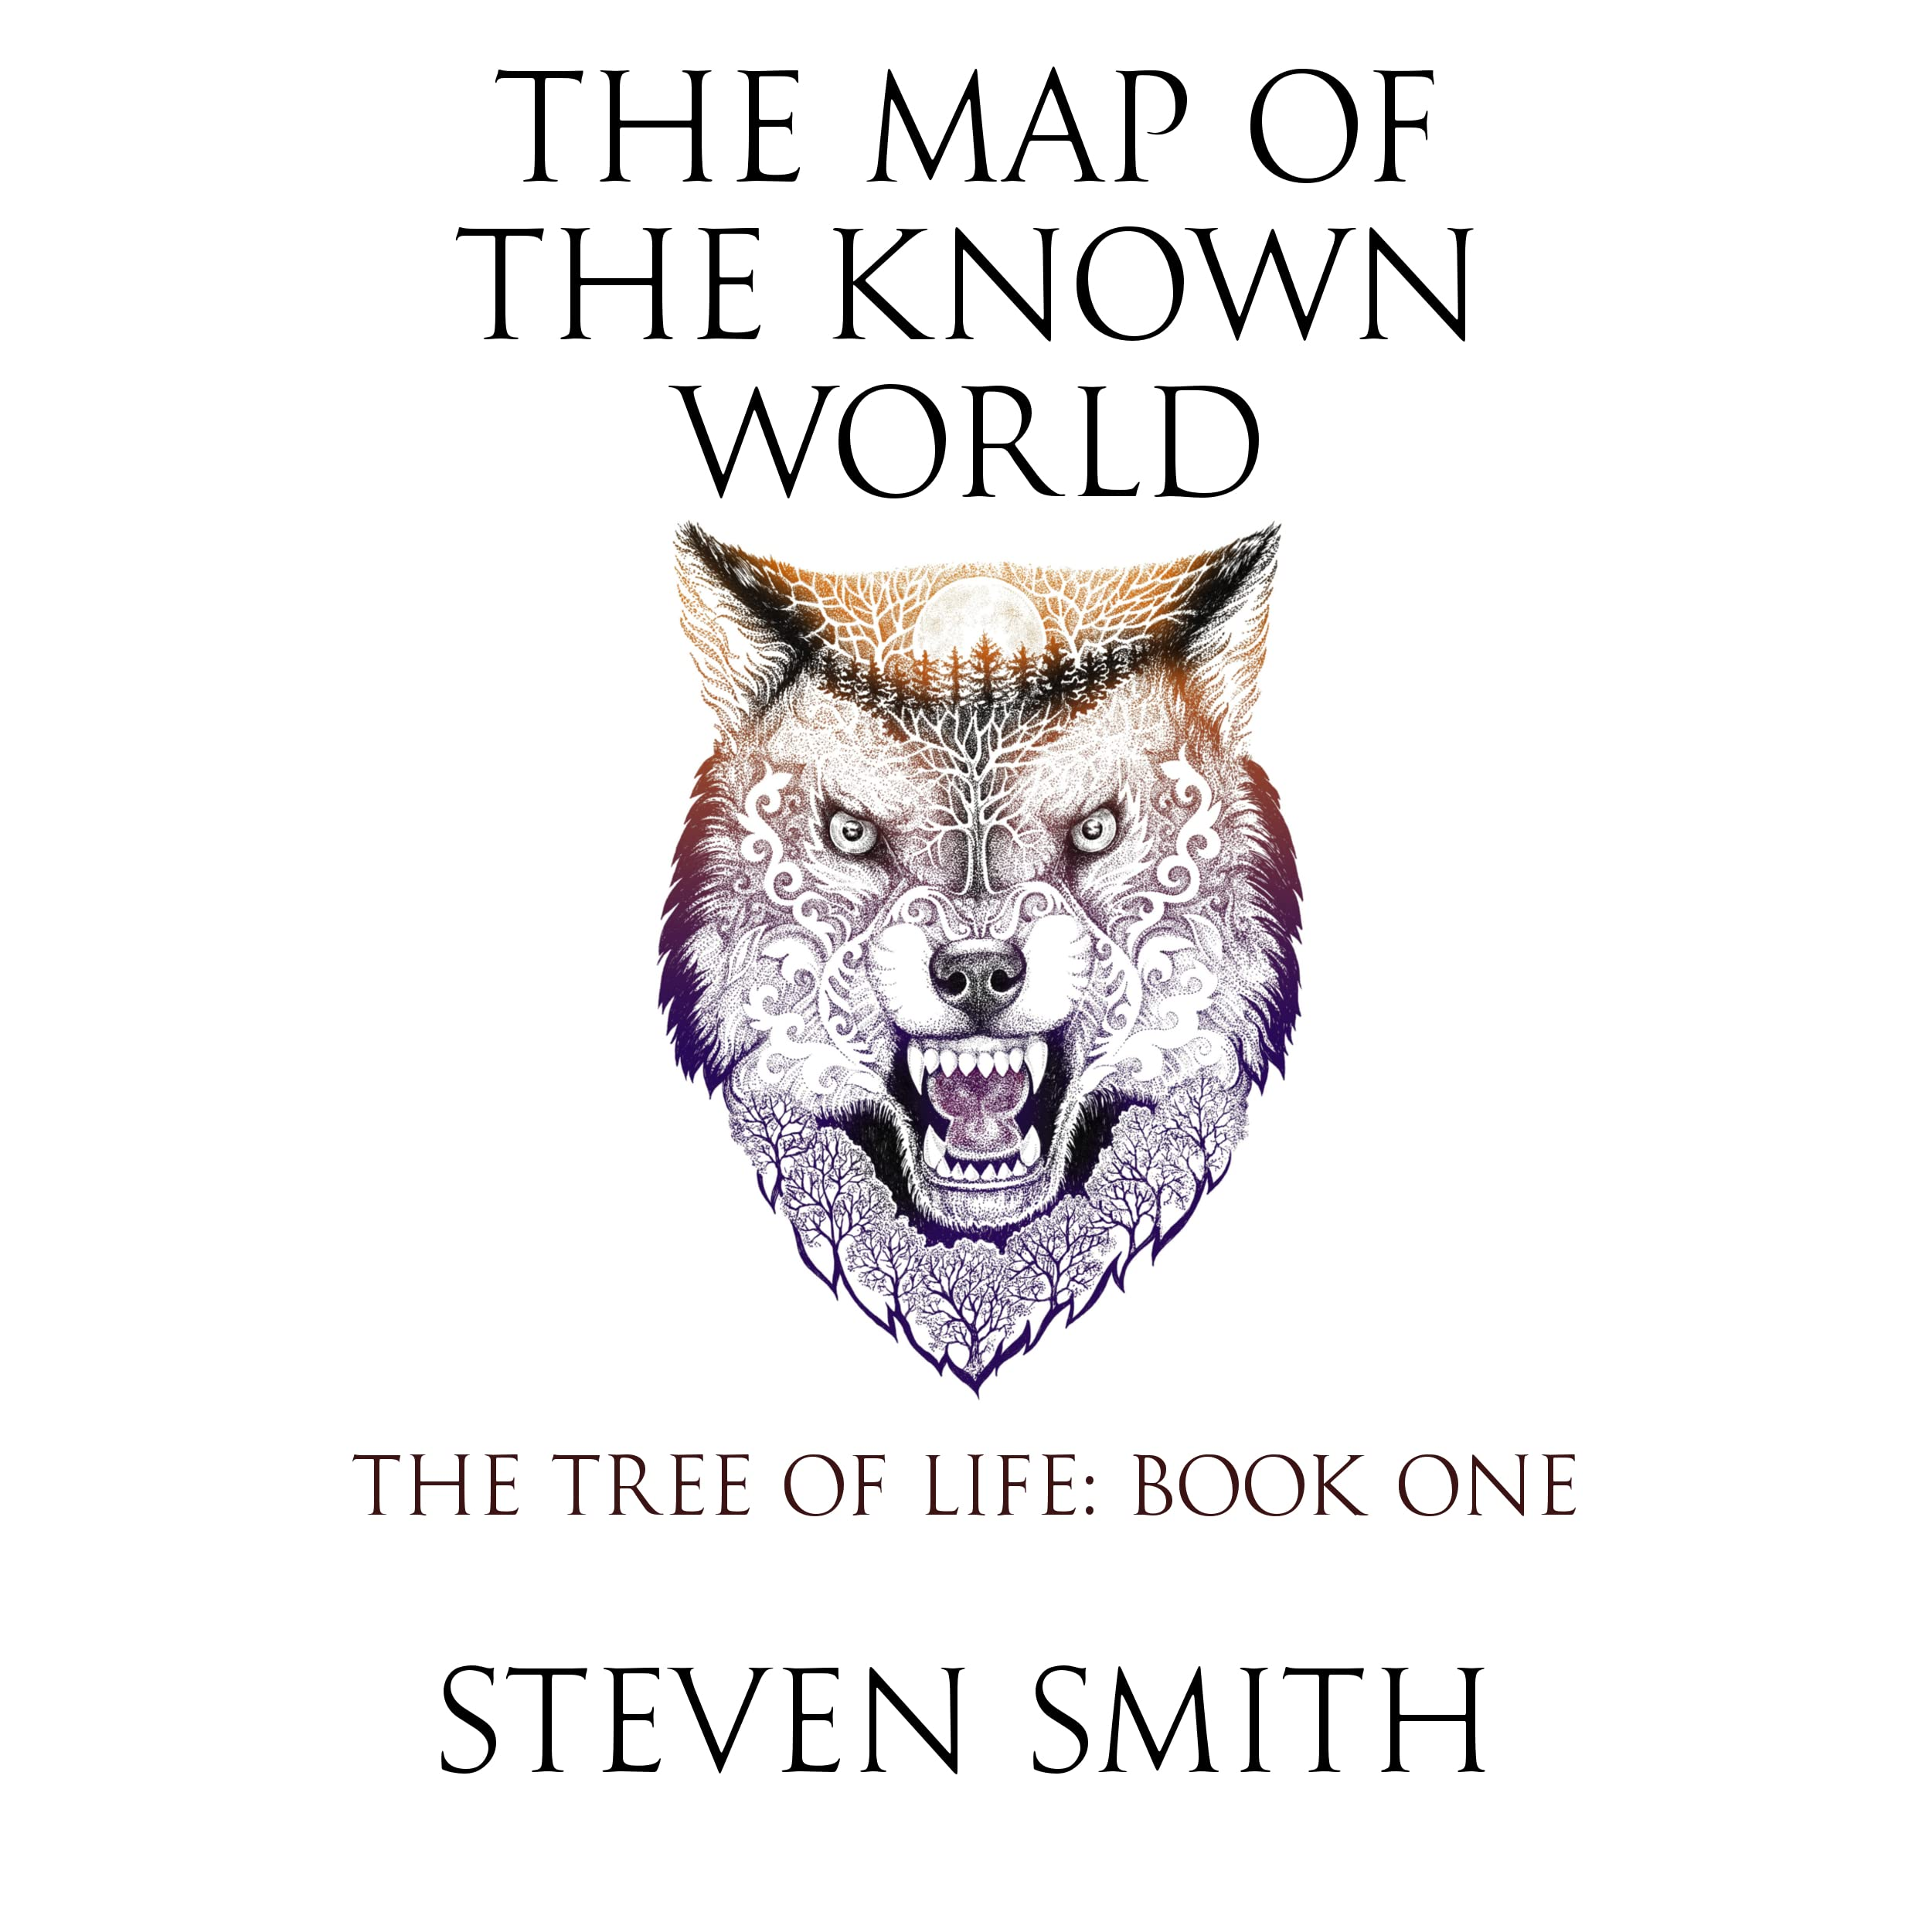 The Map of the Known World by Steven Smith